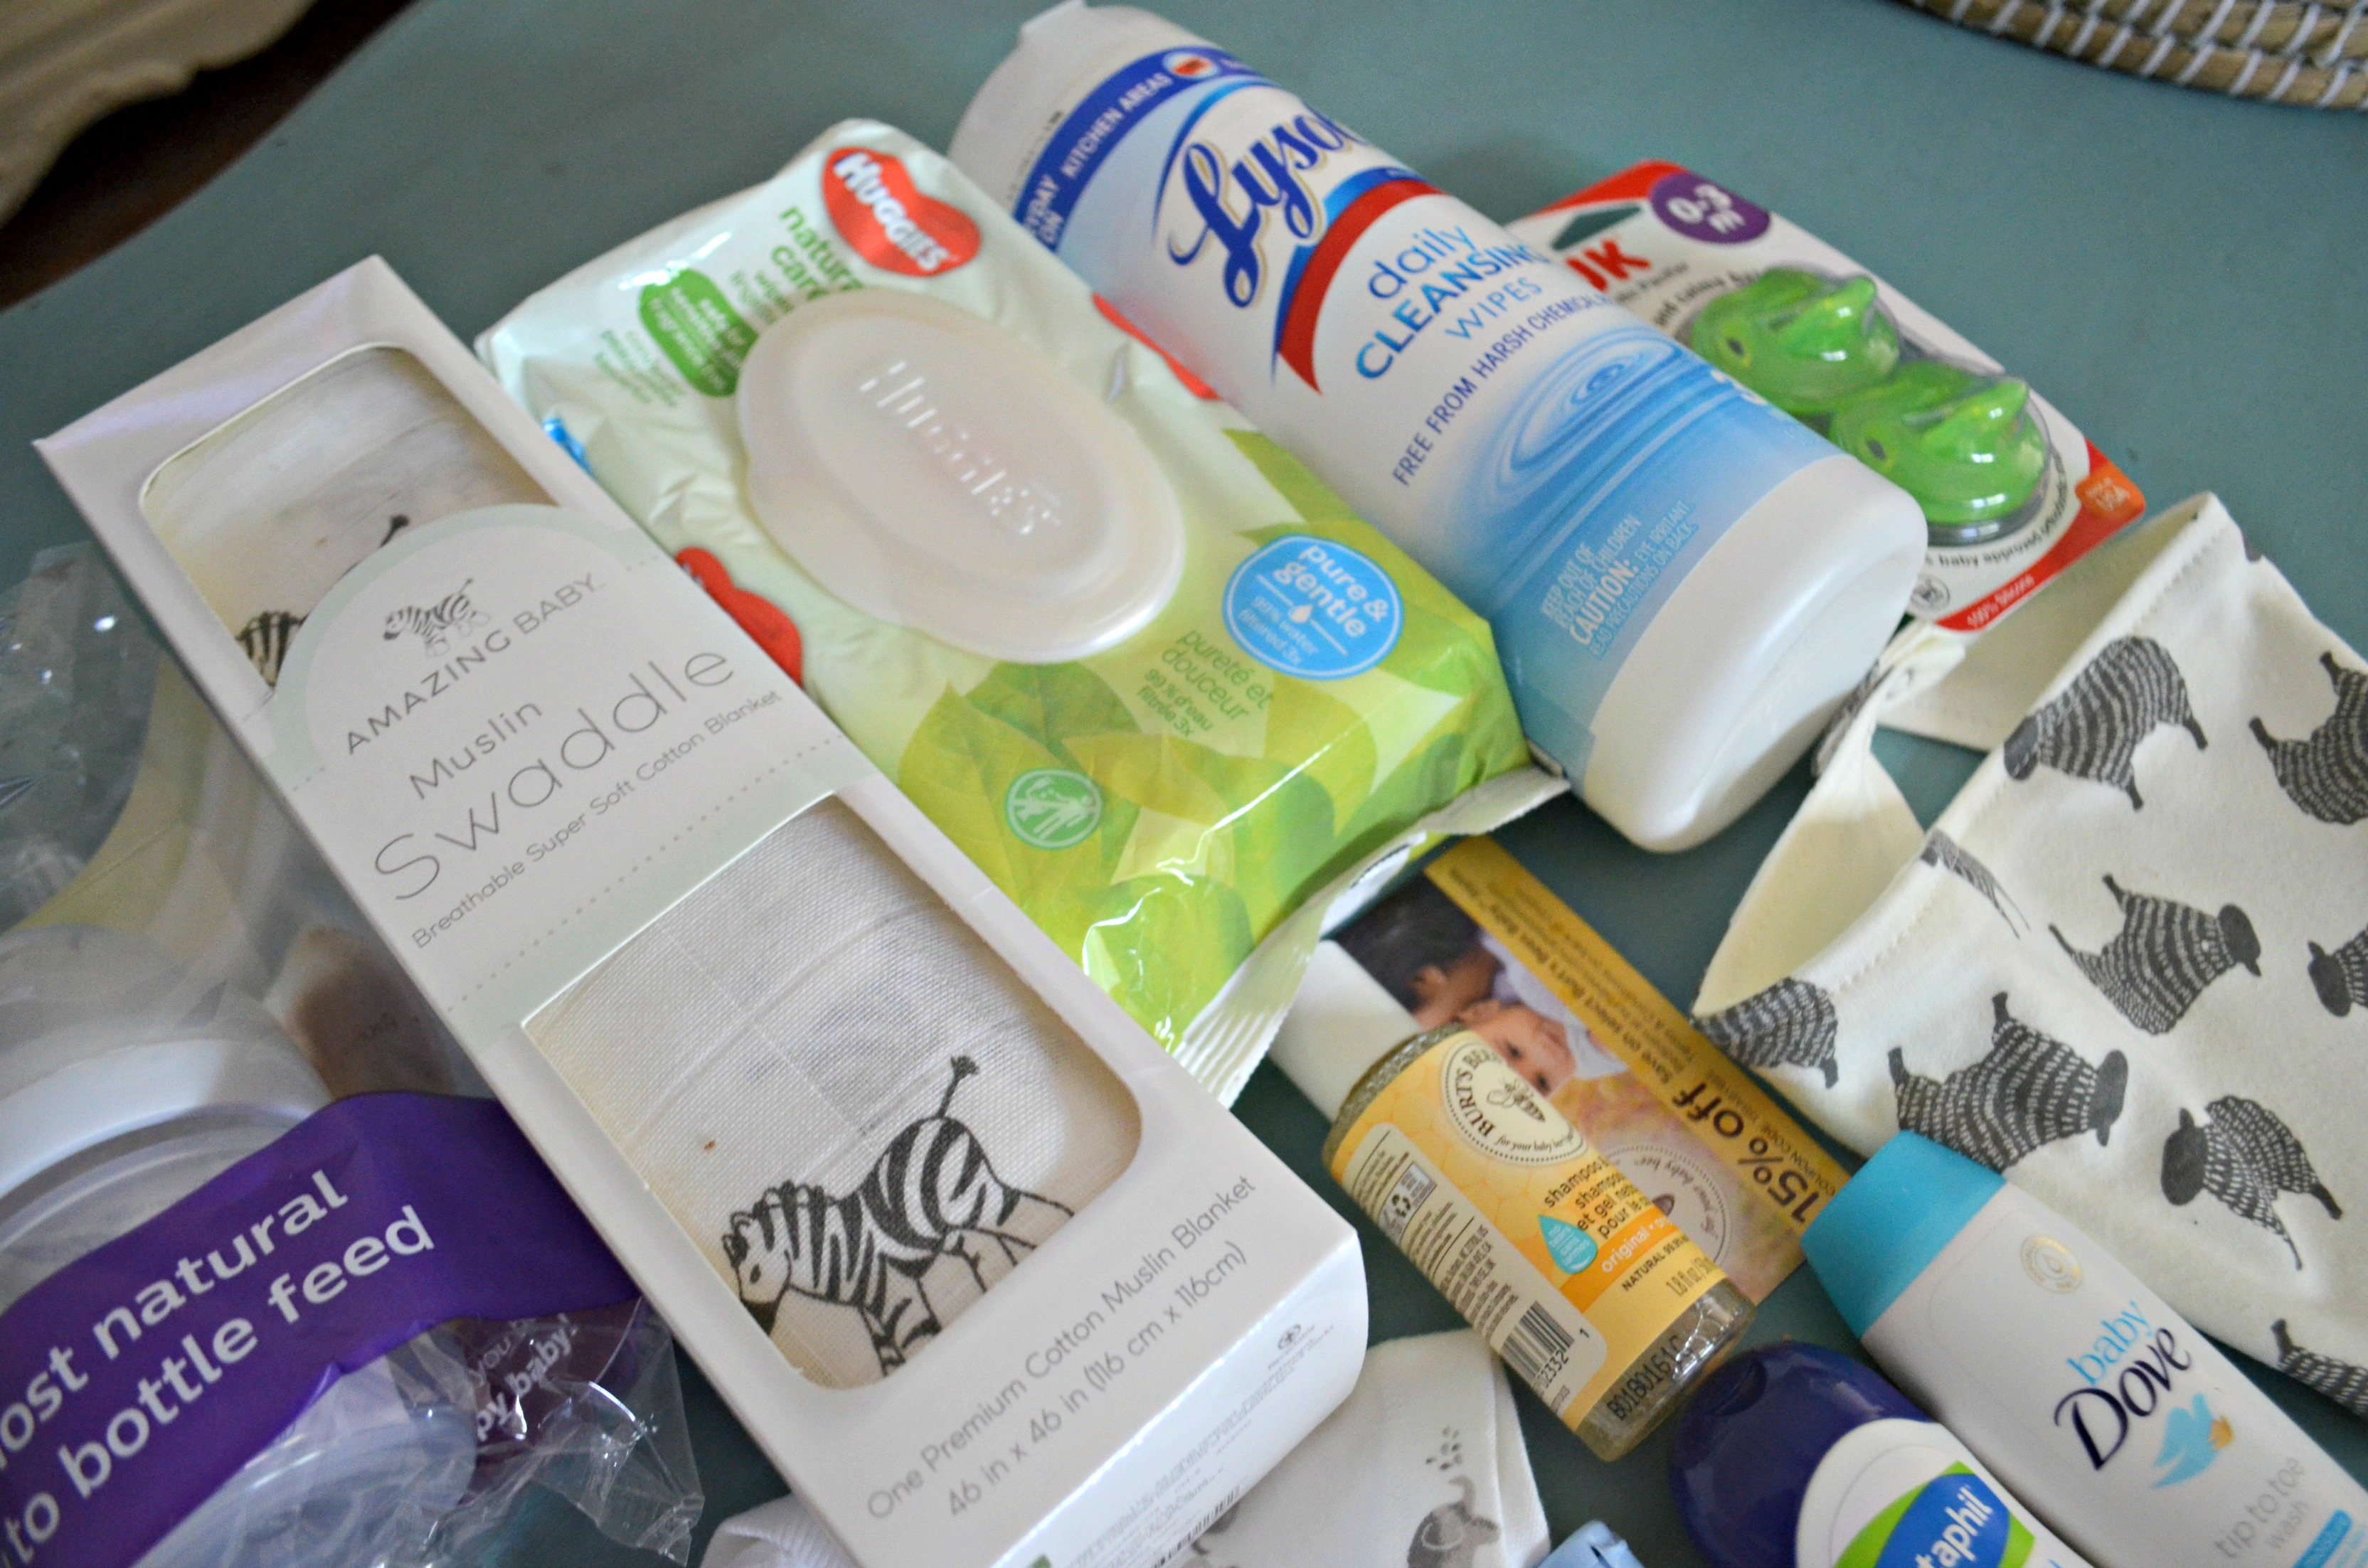 free baby box amazon registry – sample items on a table